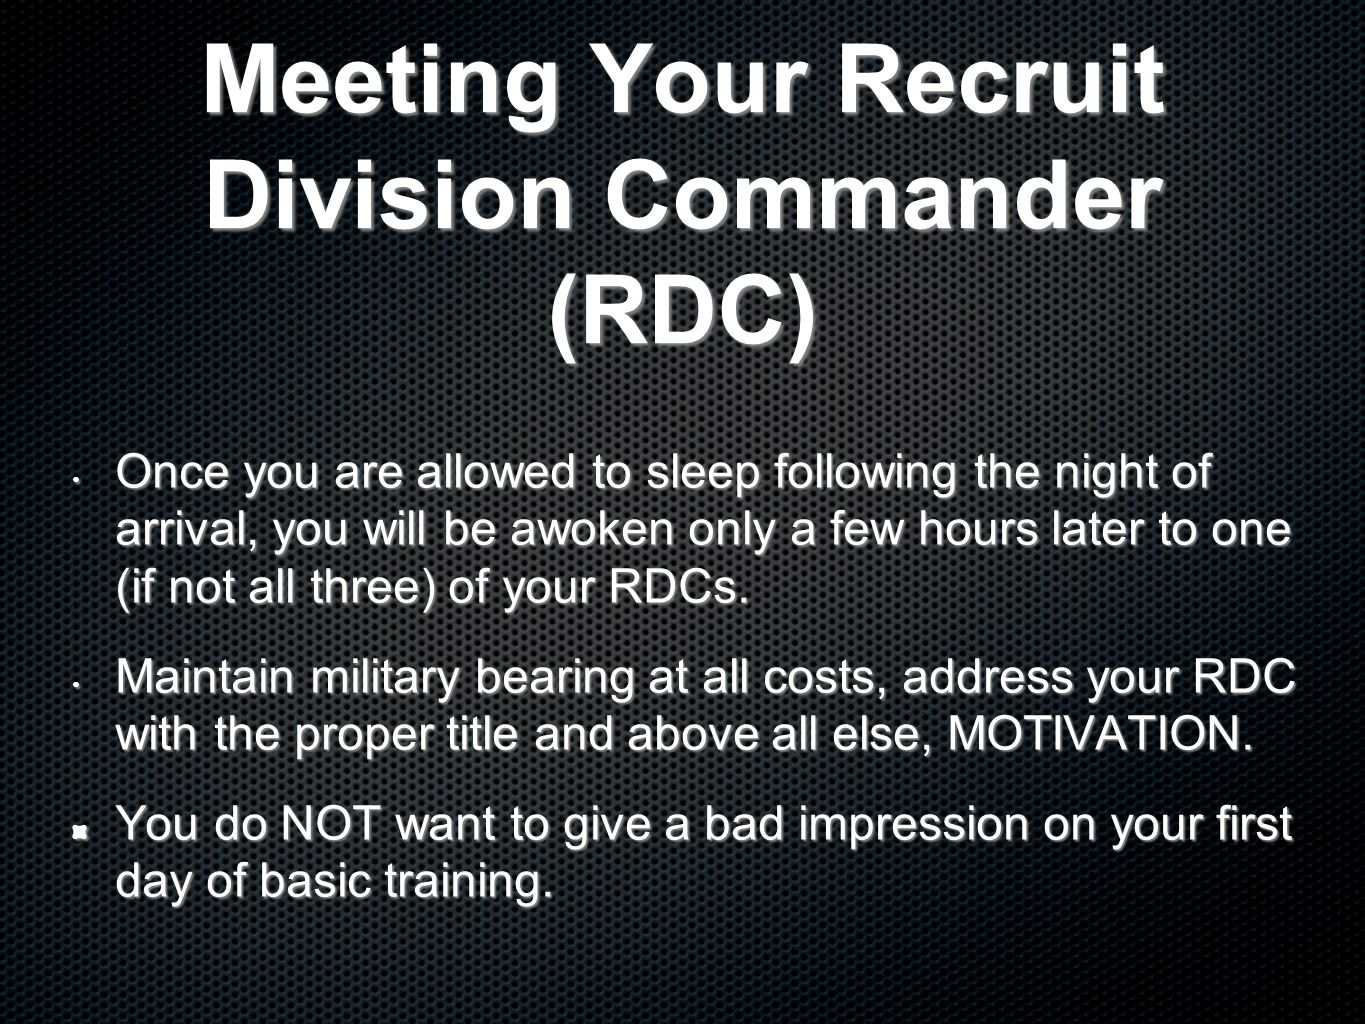 Meeting Your Recruit Division Commander (RDC)